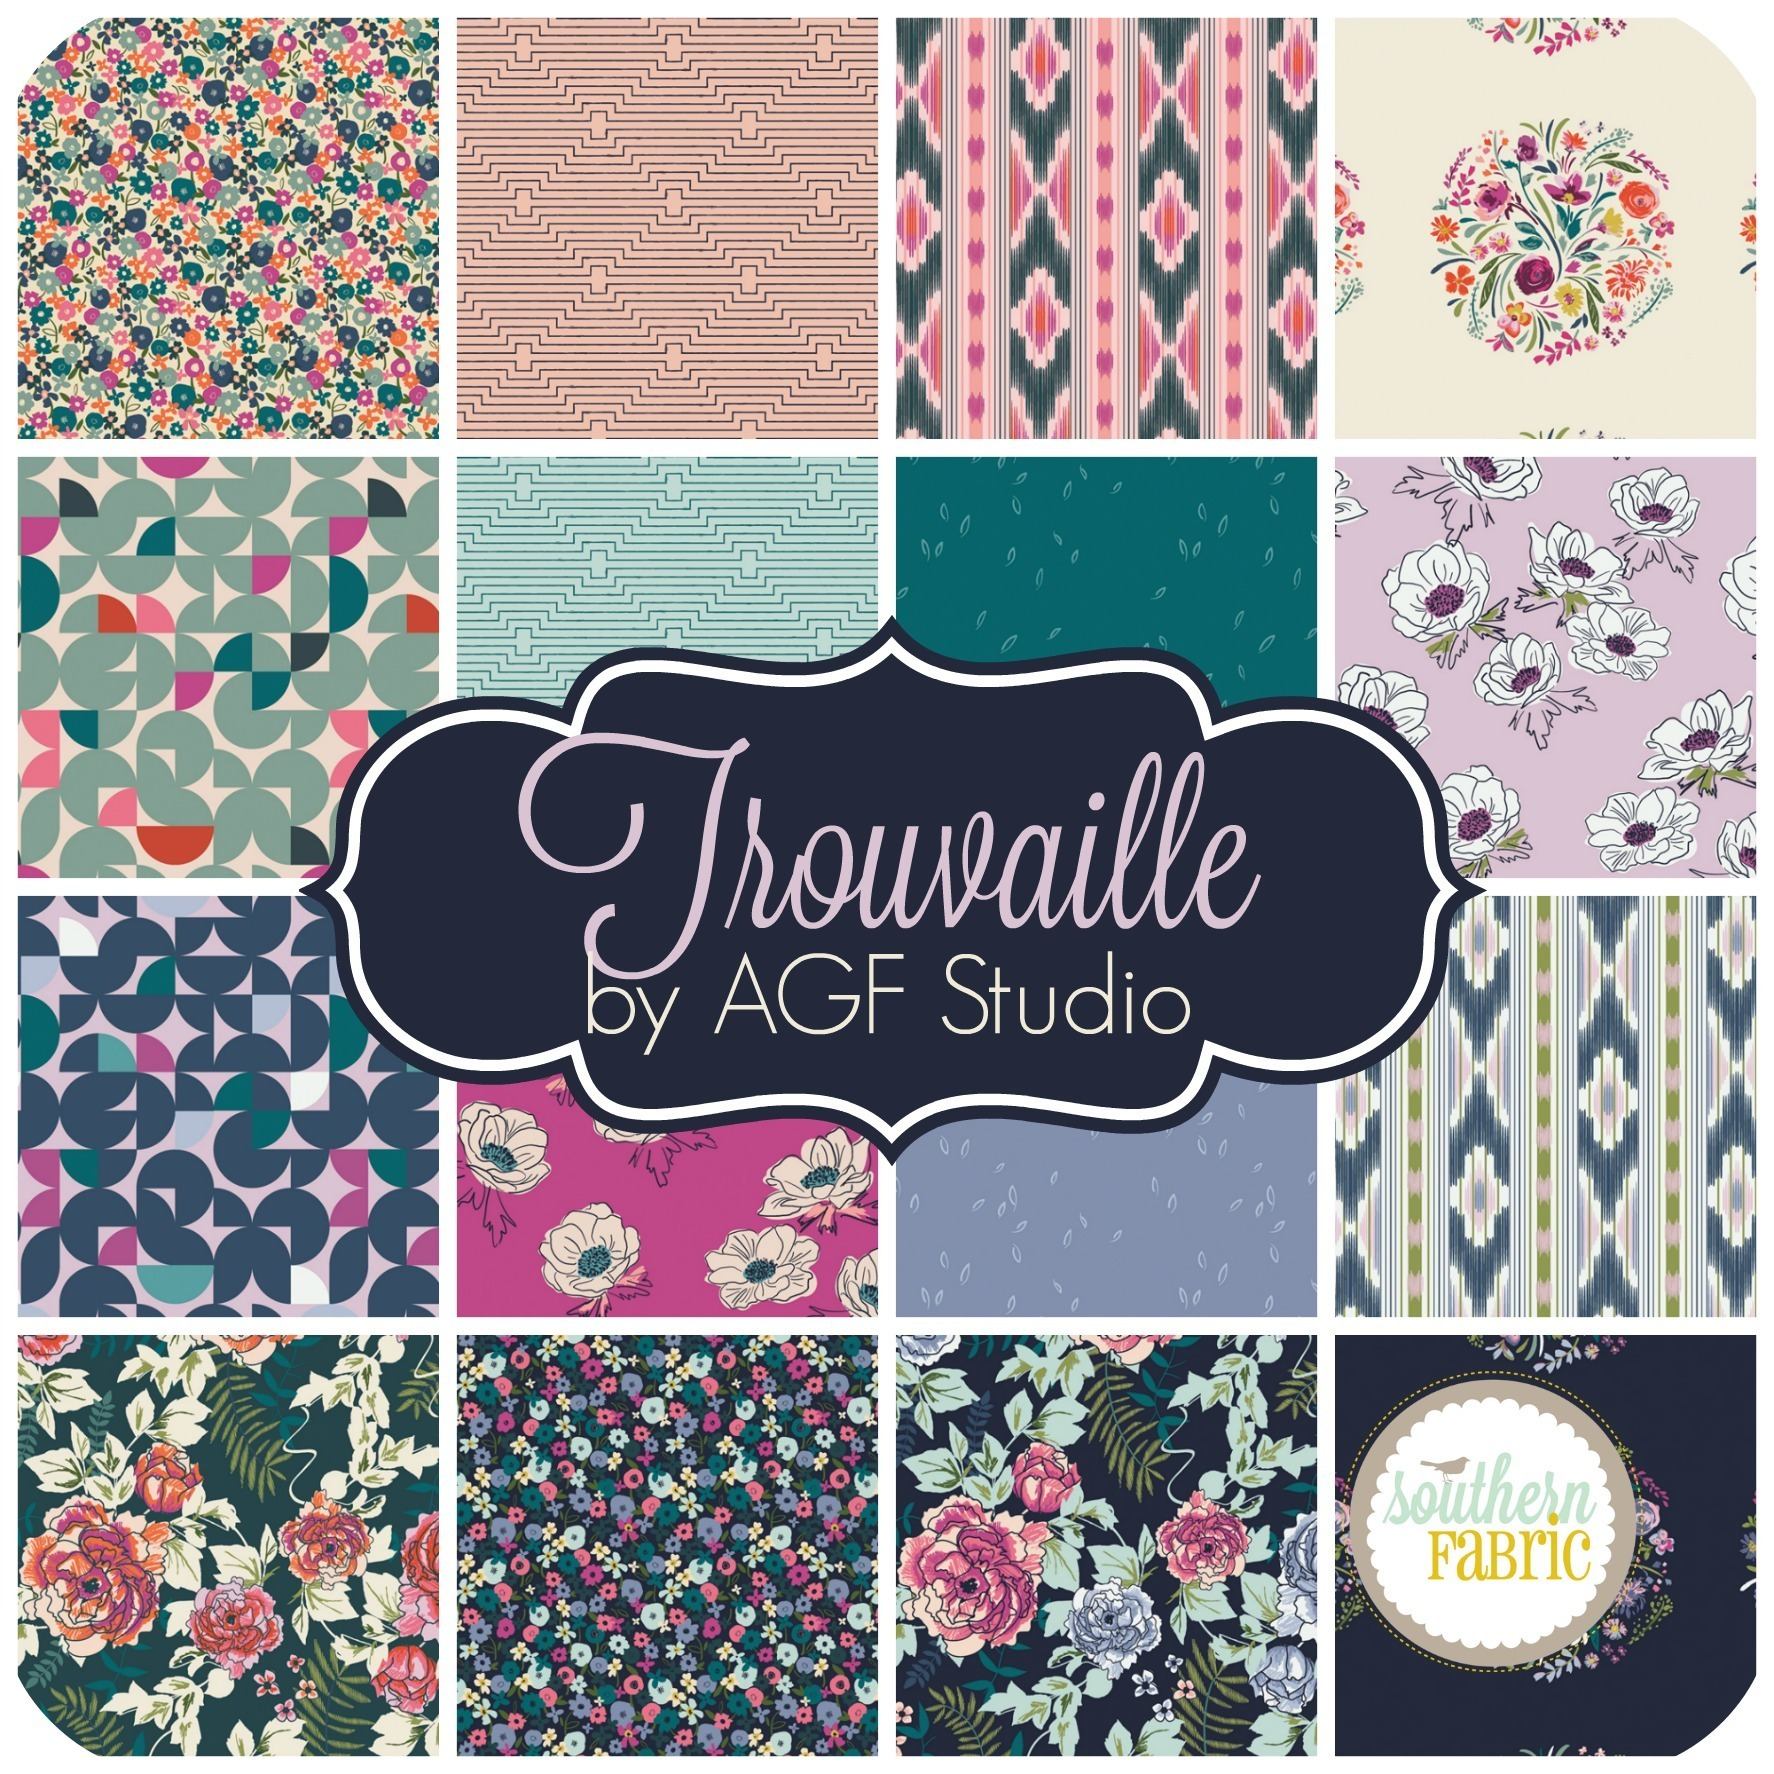 Trouvaille by AGF Studio